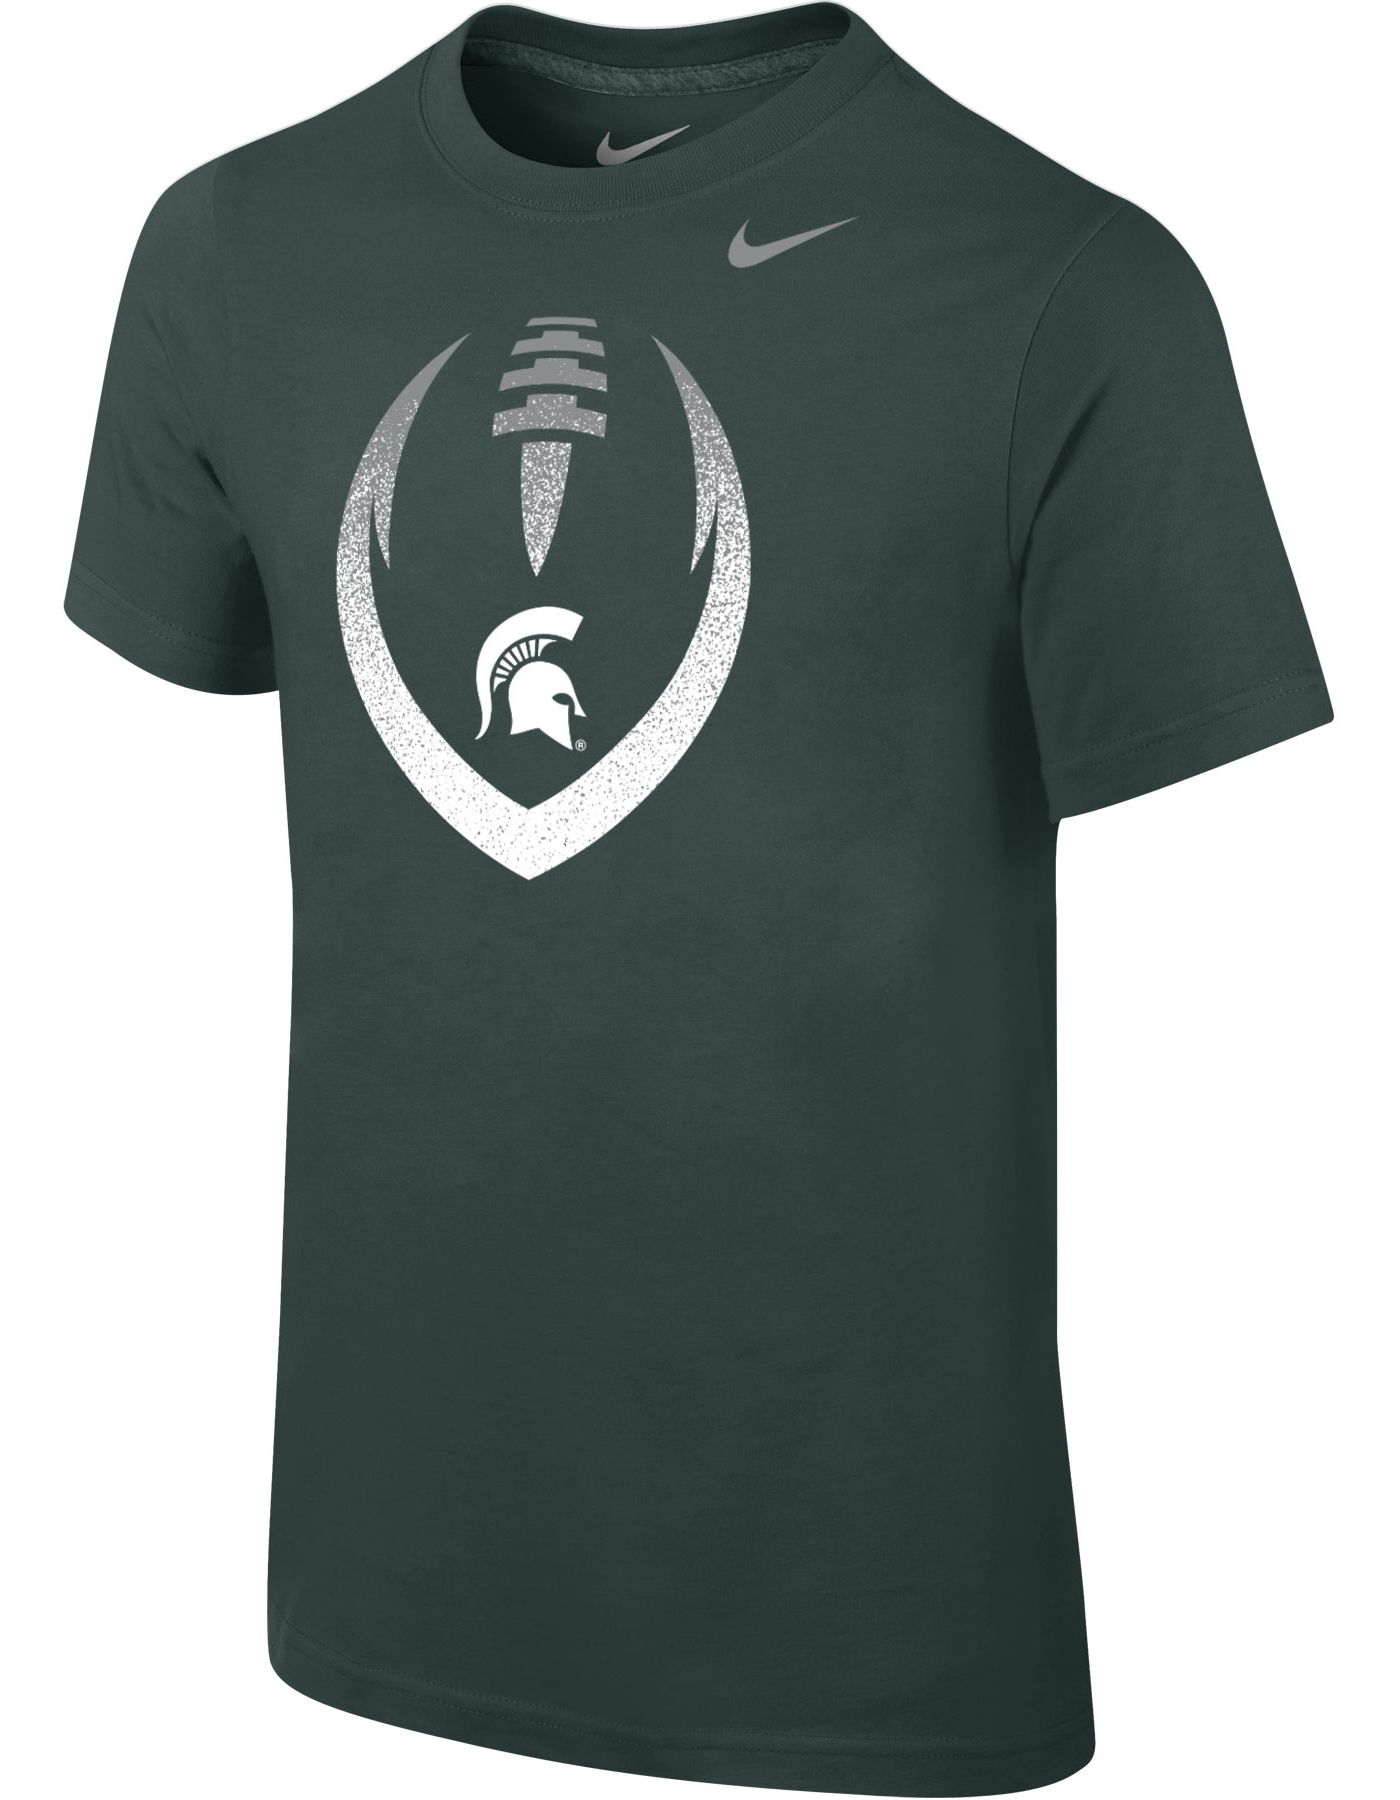 Nike Youth Michigan State Spartans Green Cotton Football Icon T-Shirt